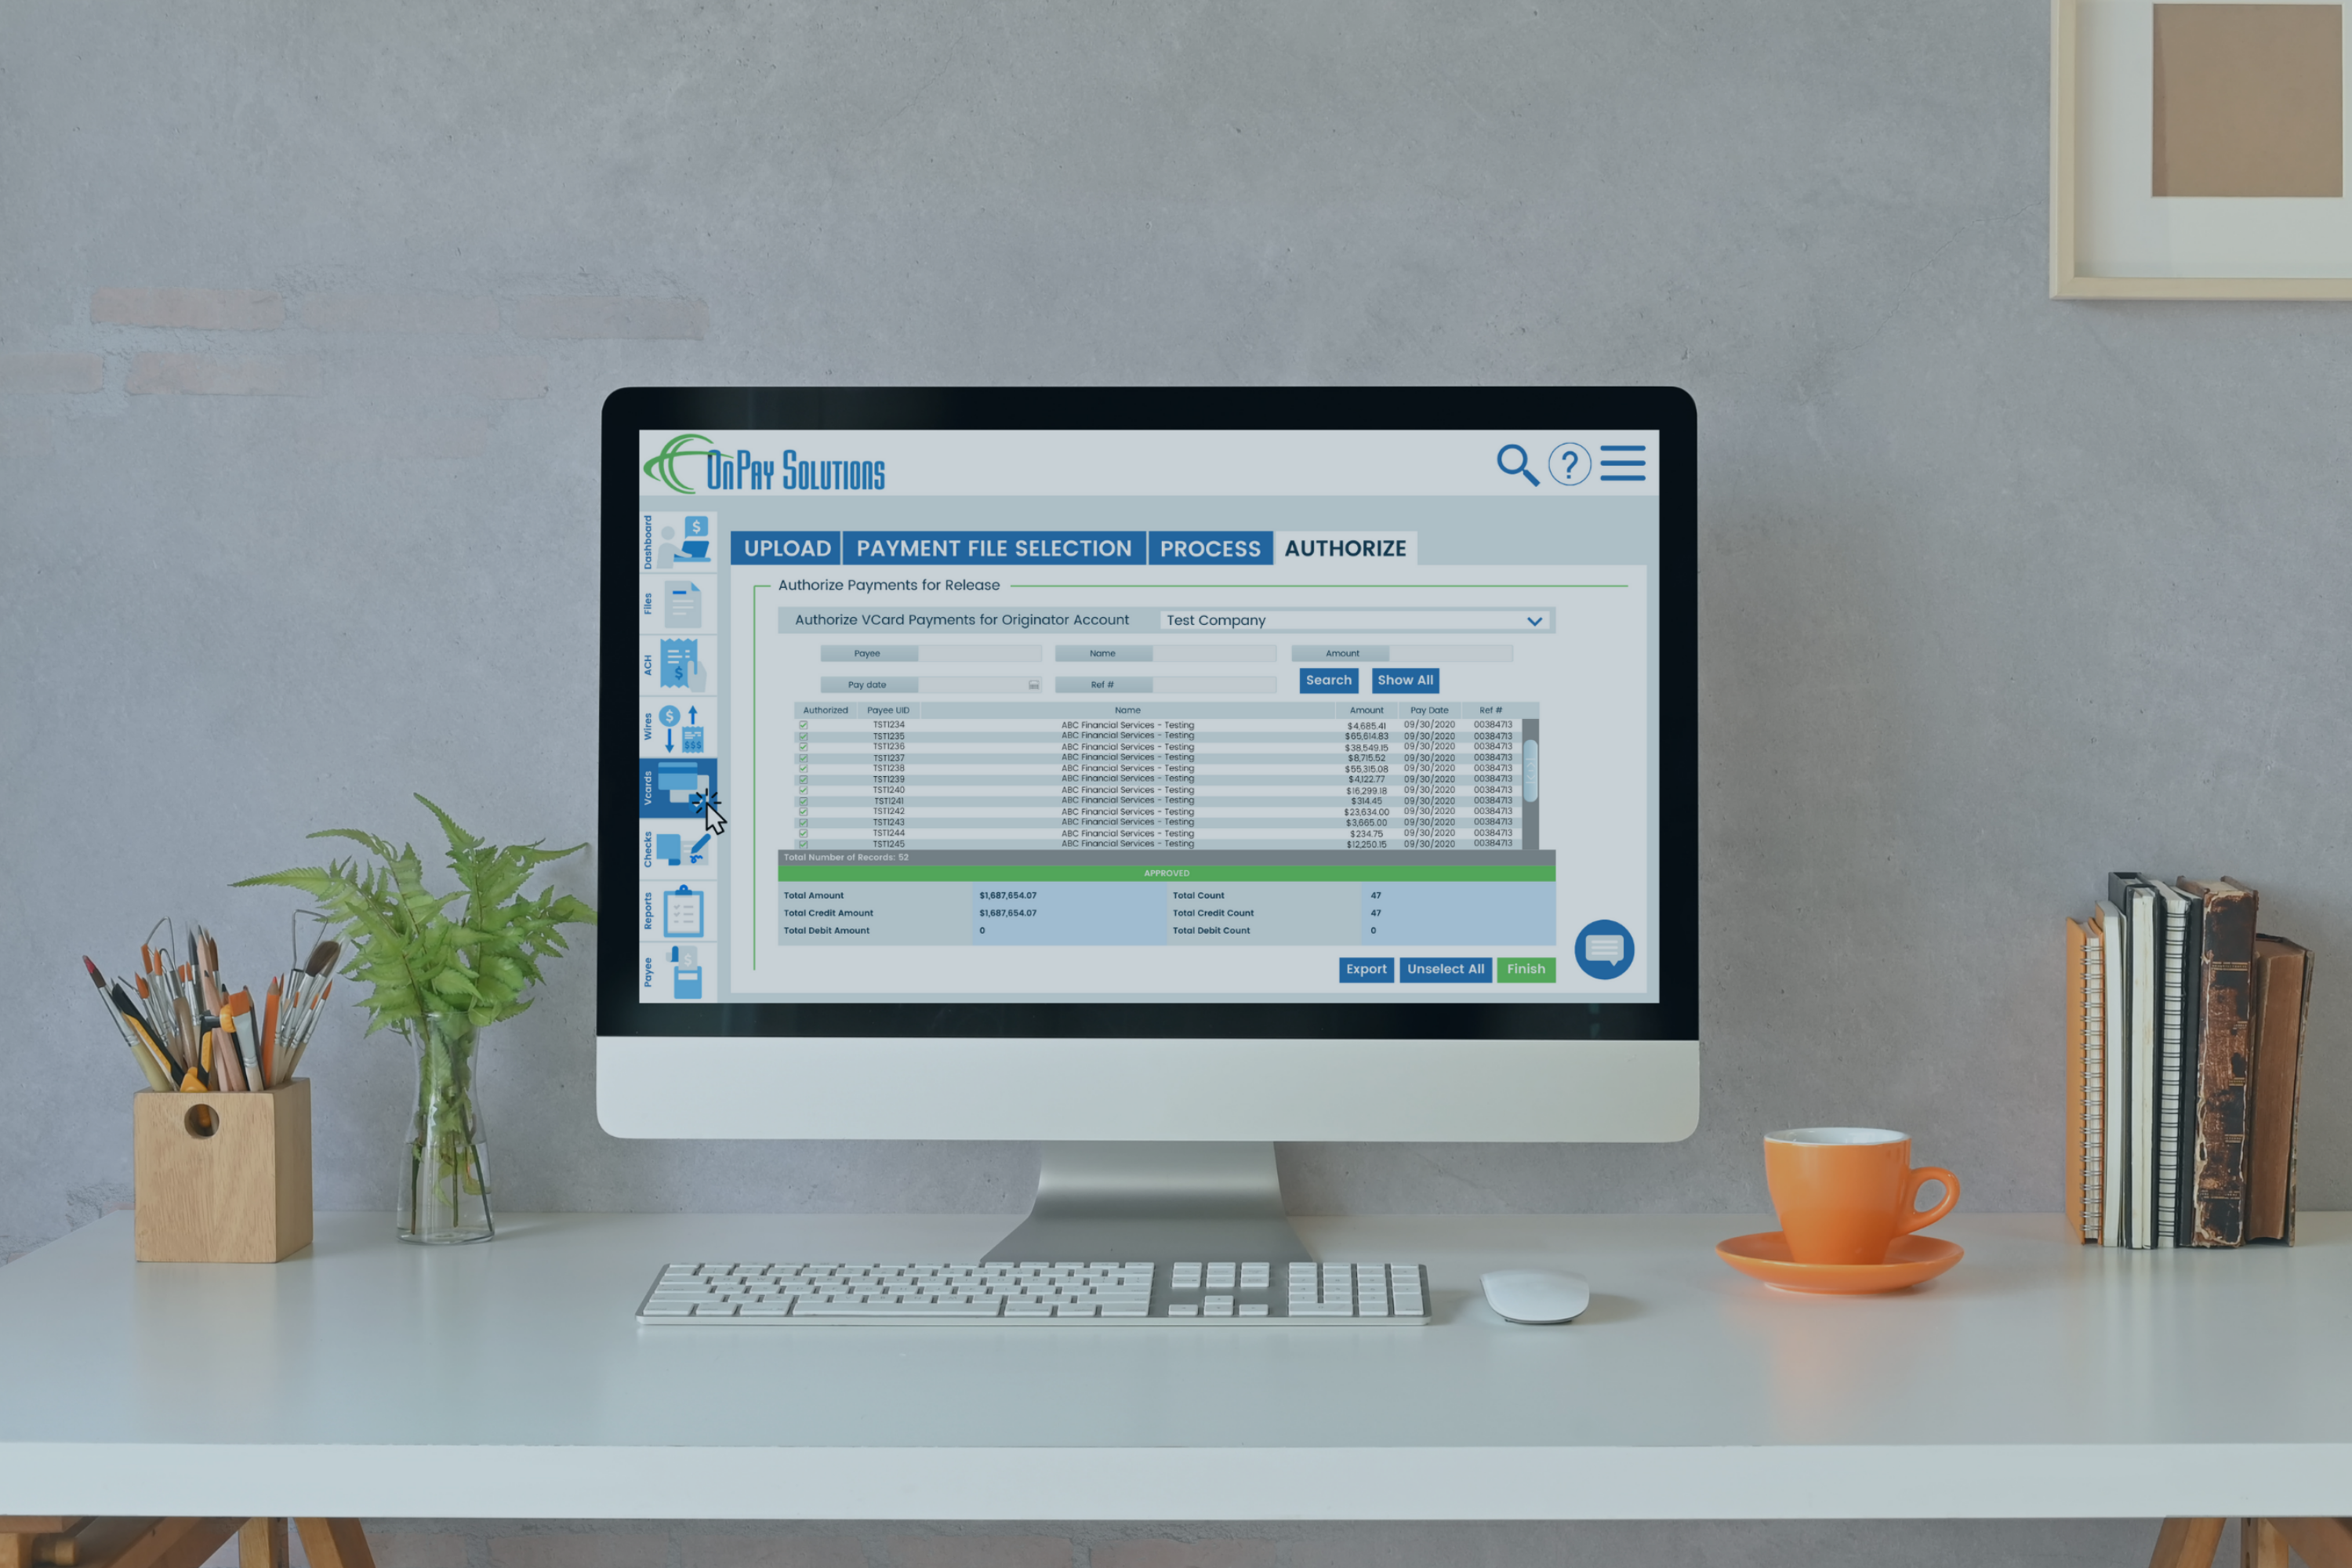 workspace_desktop_monitor_with_onpay_solutions_payment_portal_on_screen_with_books_and_coffee_cup_nearby